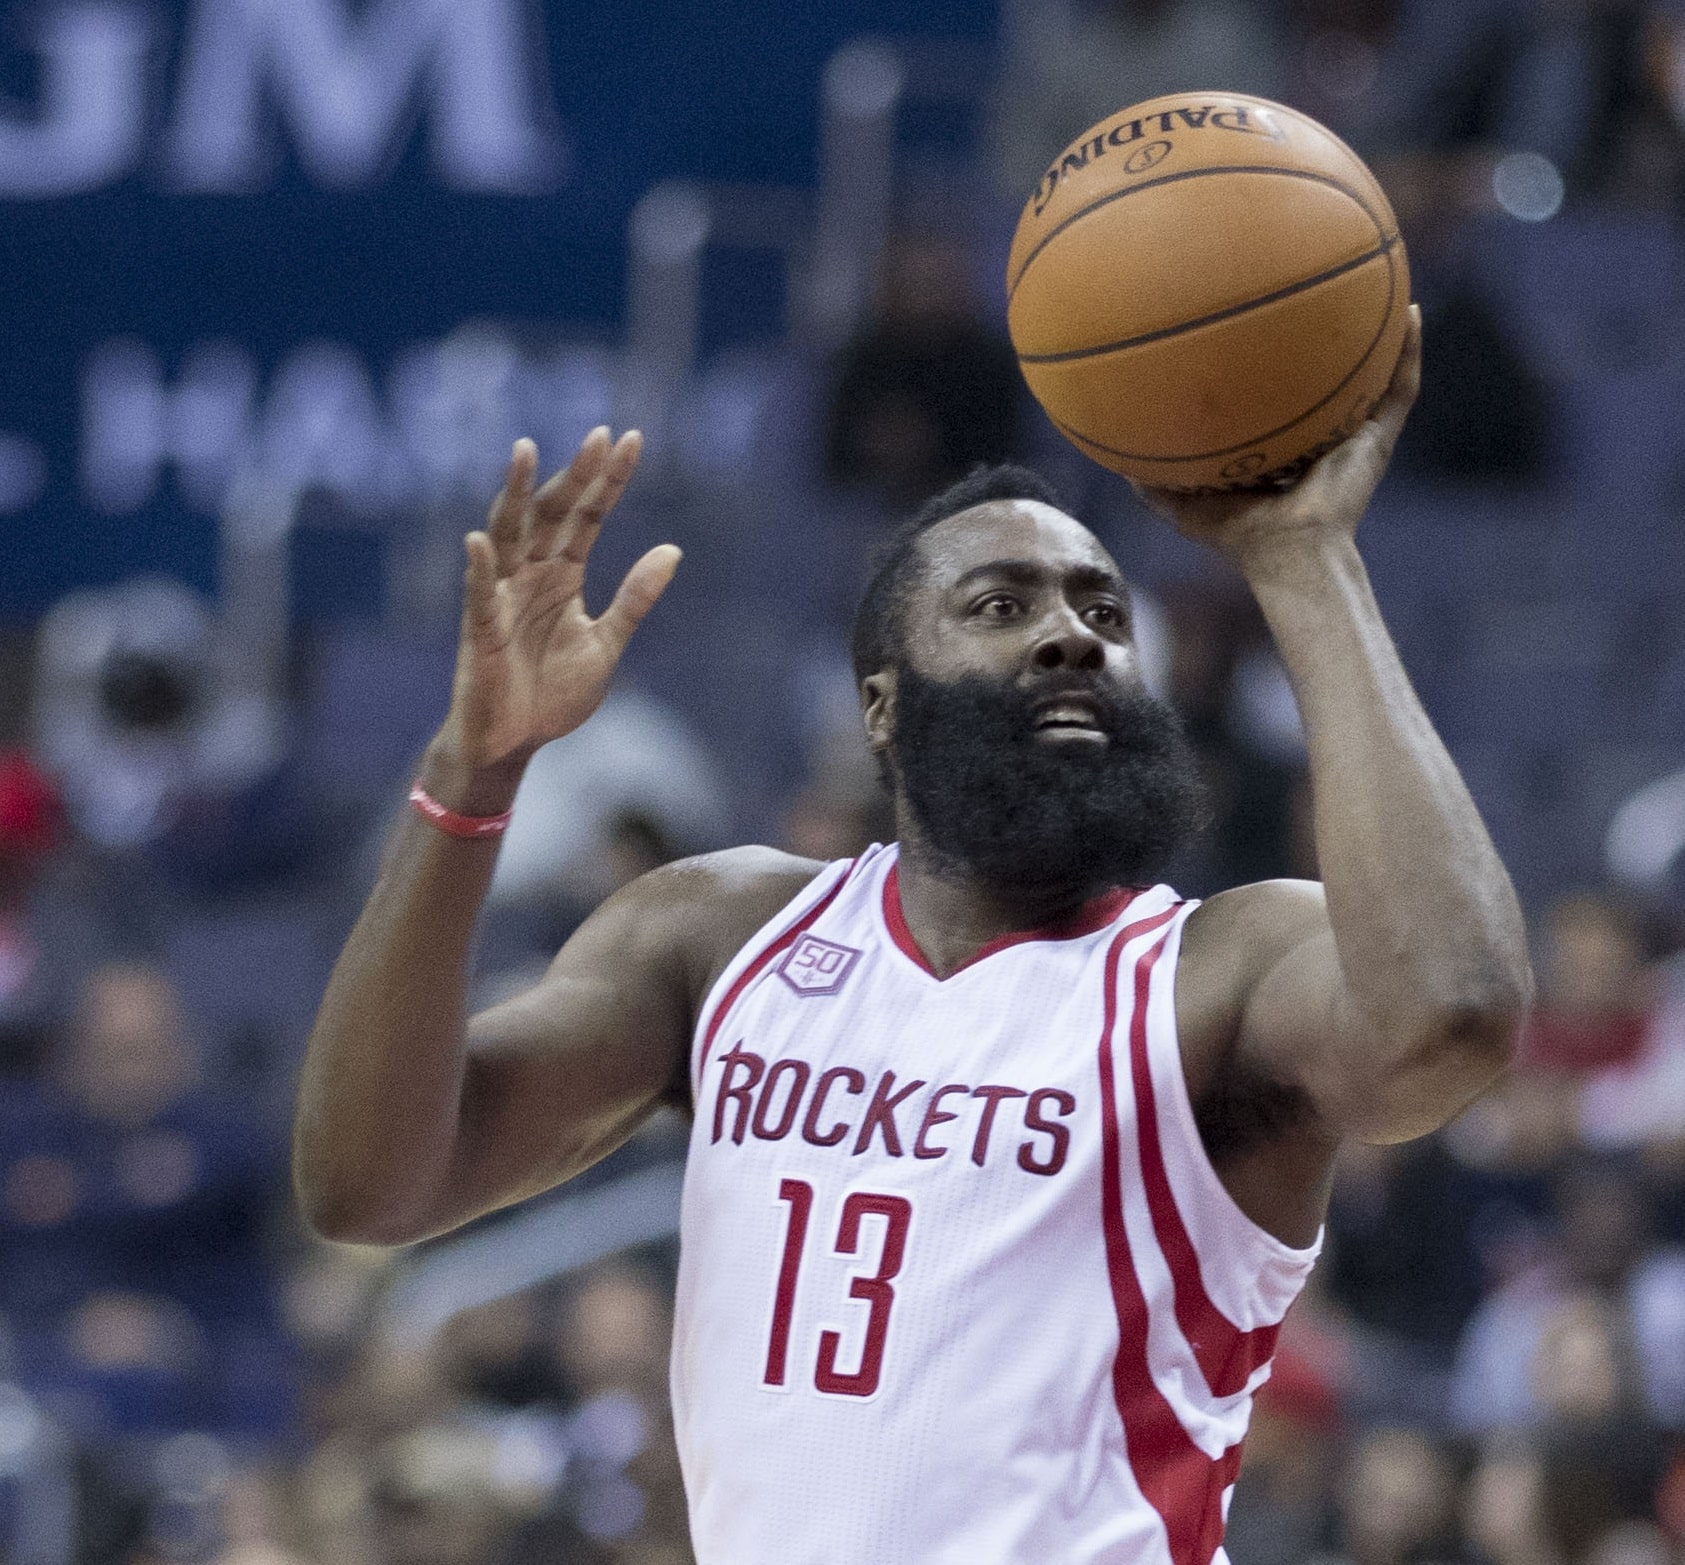 James Harden Scores 12 in First Appearance, Looks Significantly Overweight